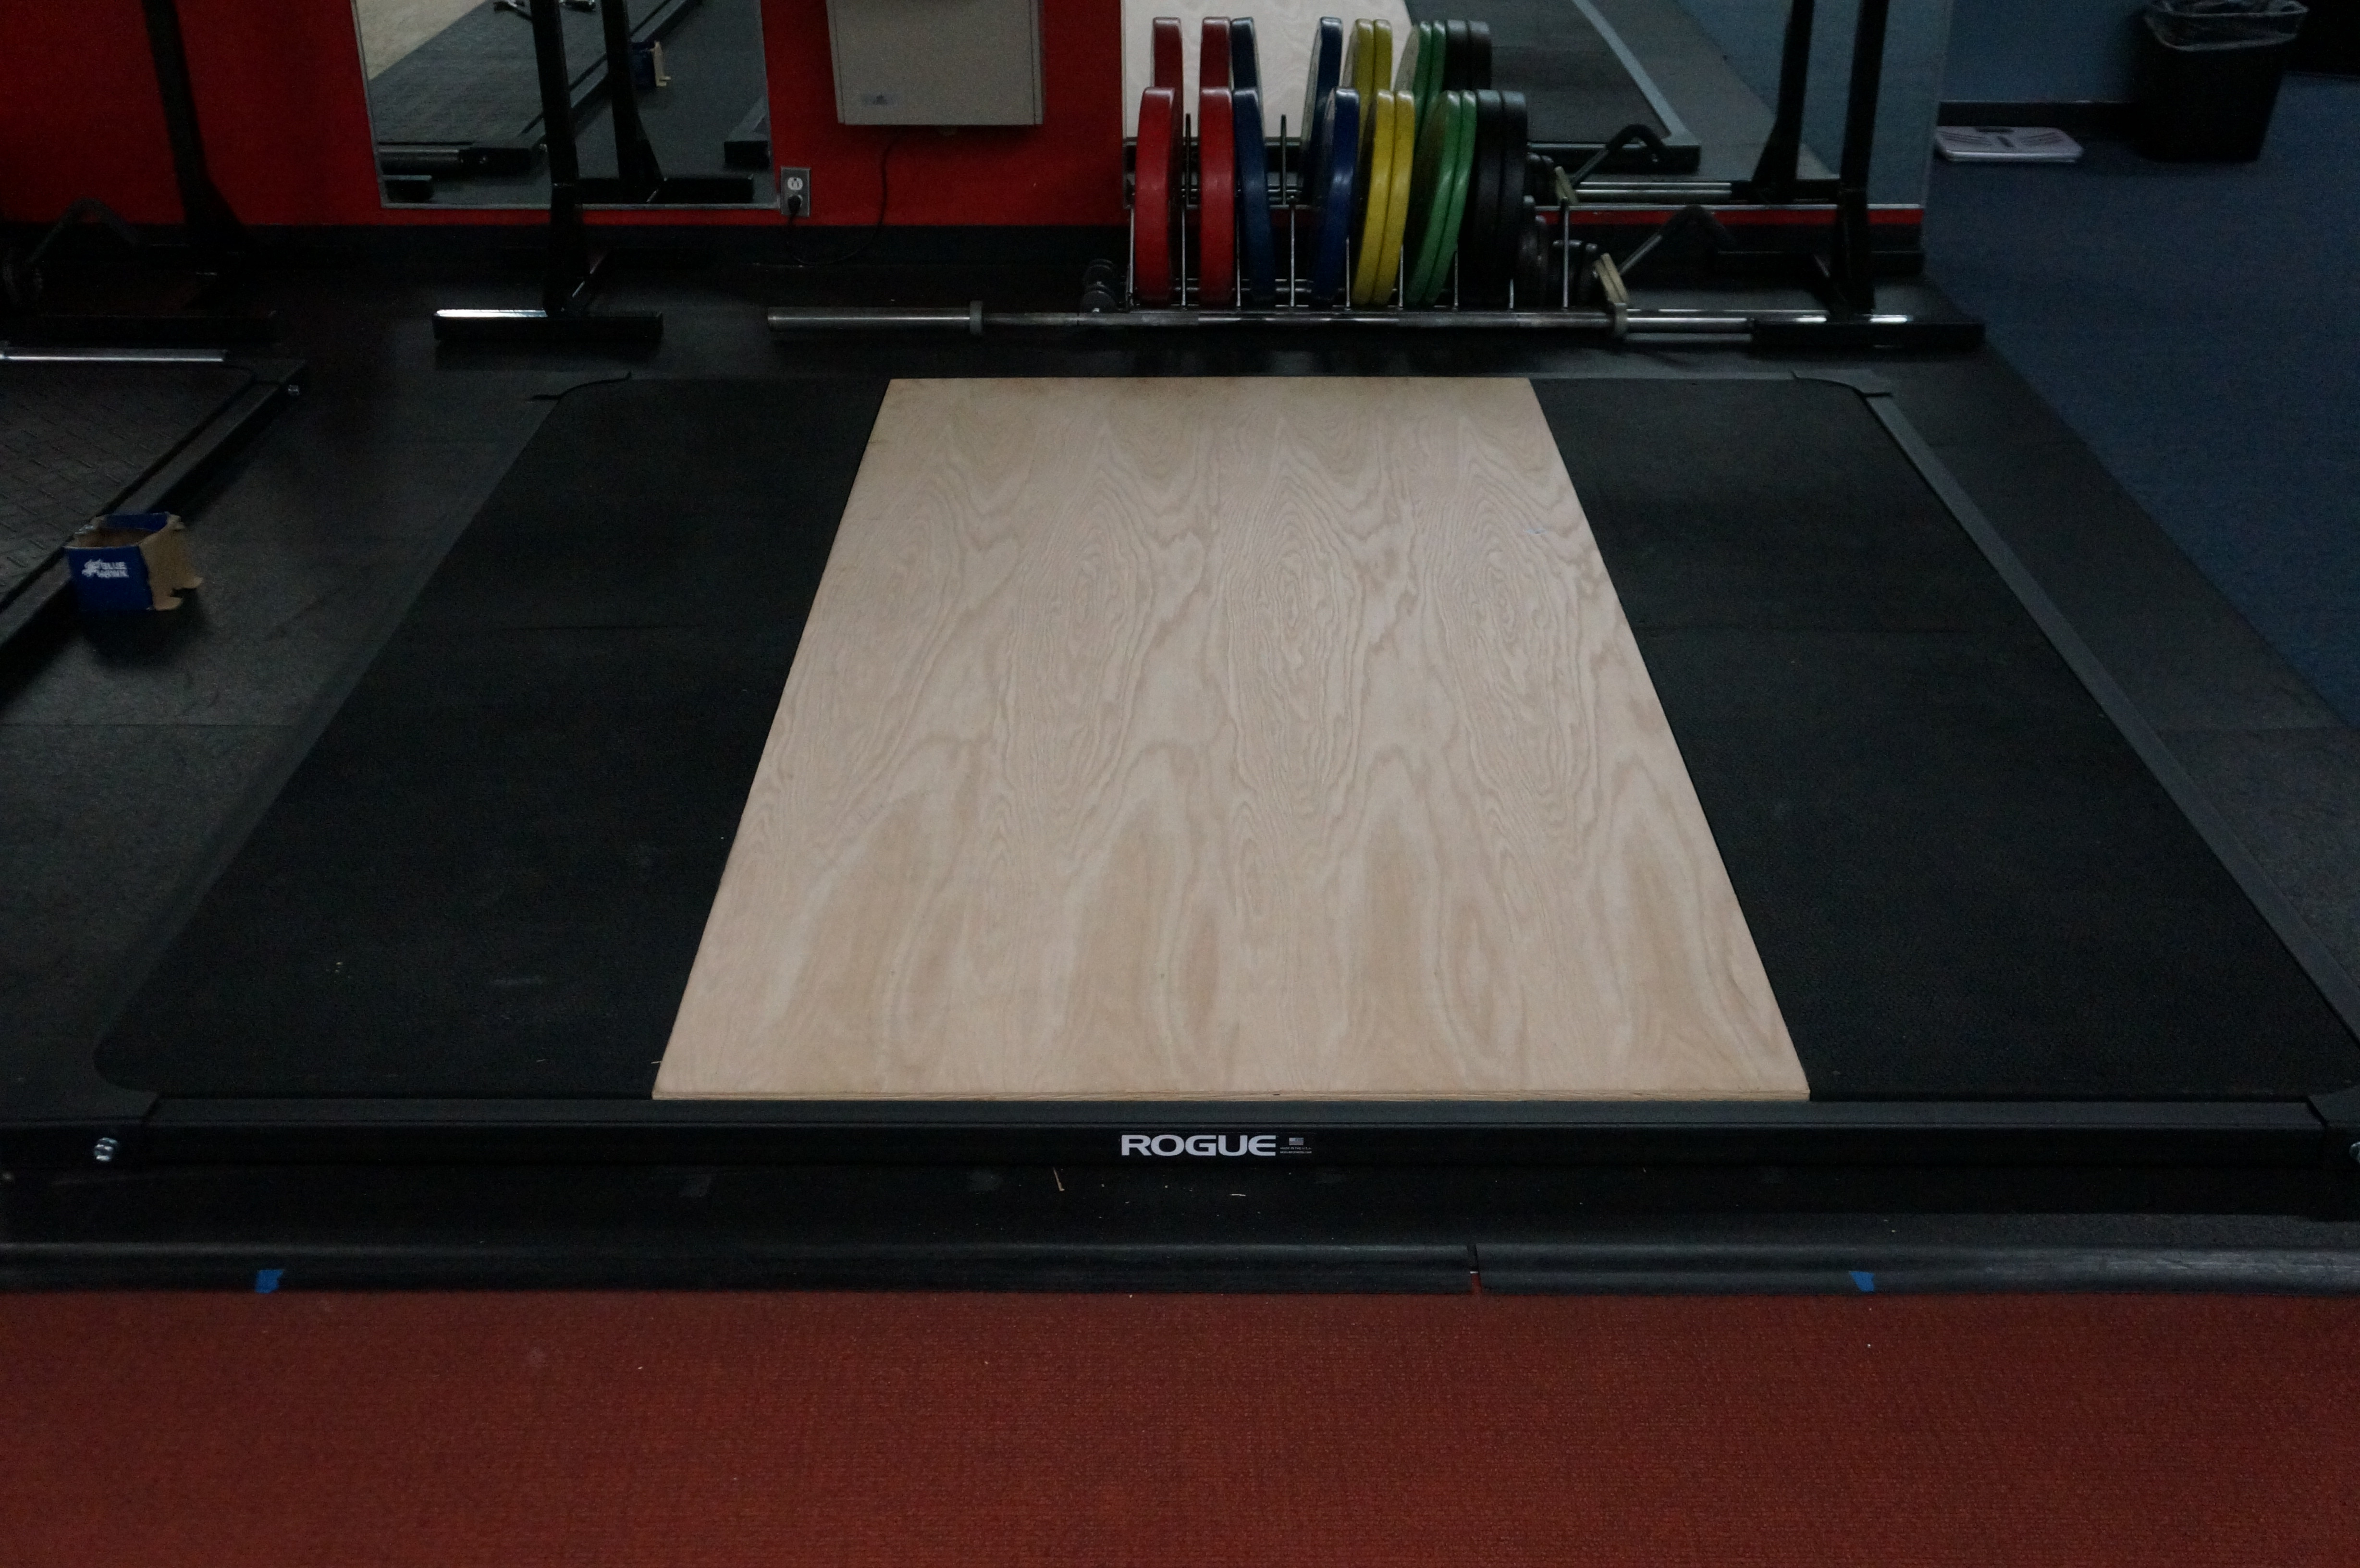 Best ideas about DIY Lifting Platform . Save or Pin How to Build a Weightlifting Platform Athletic Lab Now.